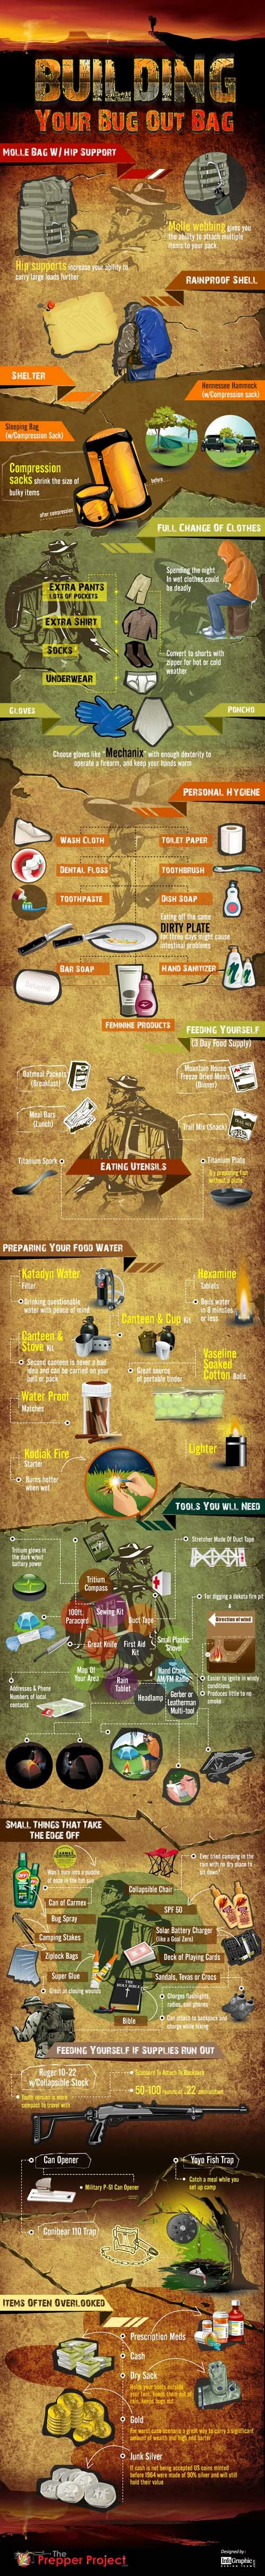 Survival/Bug-out bag checklist info graphic. Very nice!